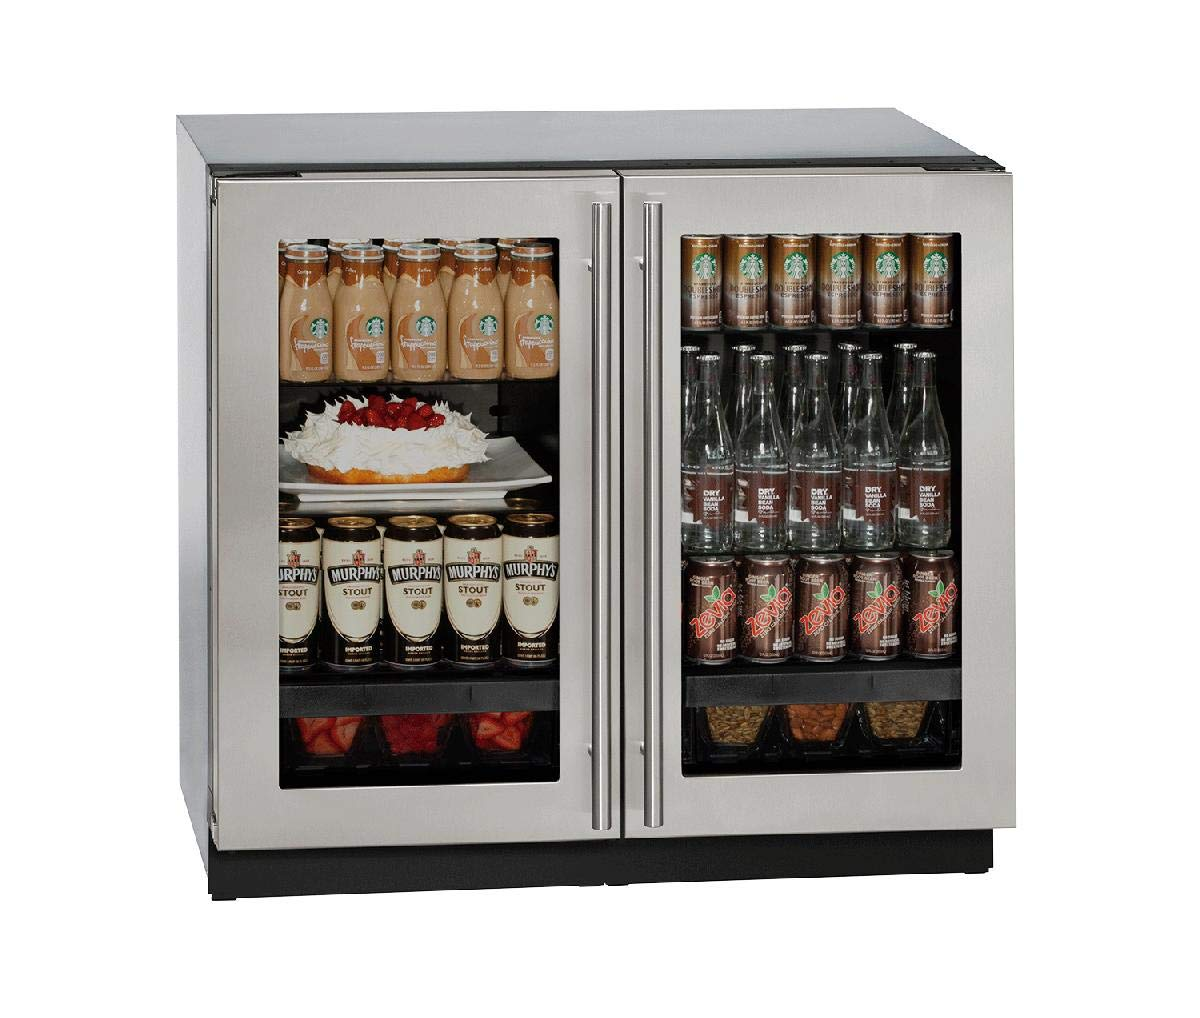 U-Line U3036RRGLS00B Modular 3000 Series 36 Inch Built In Compact Refrigerator with 6.9 cu. ft. Capacity, in Stainless Steel